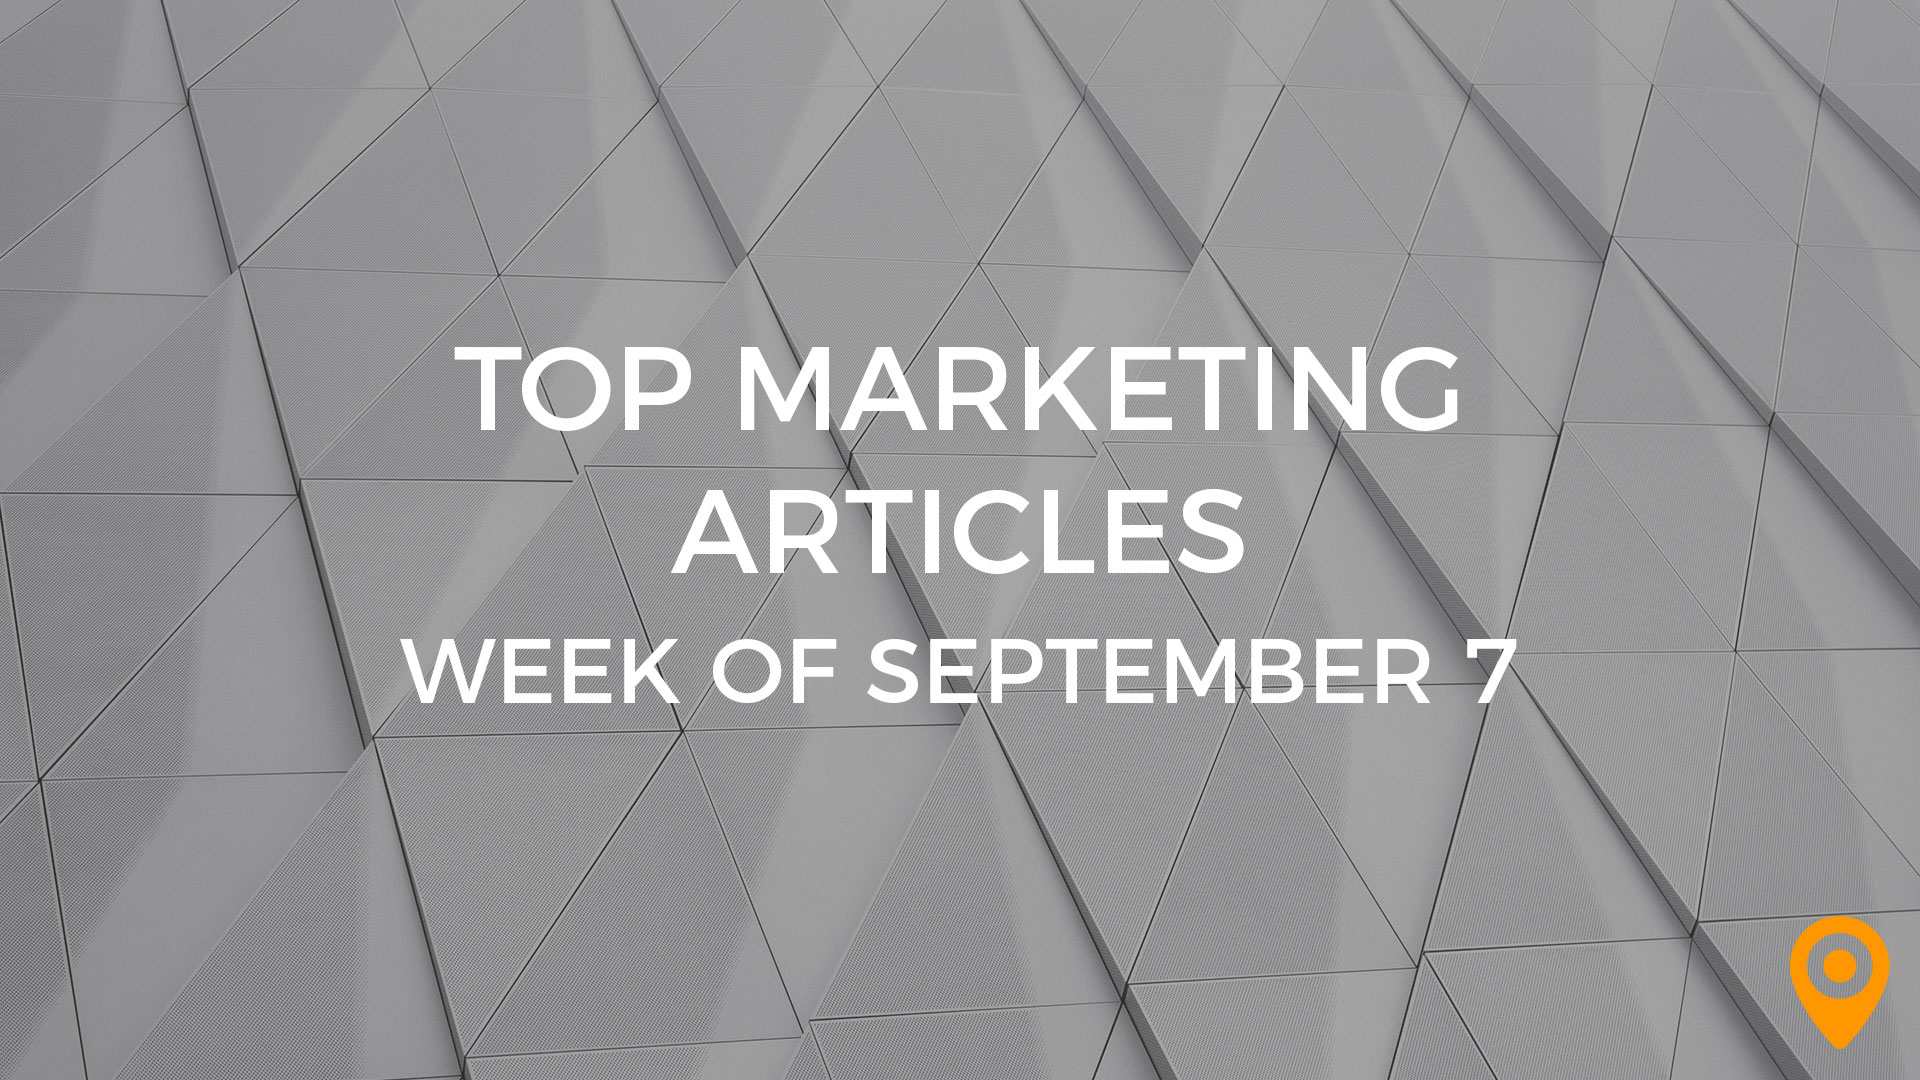 Top Marketing Articles Sept 7